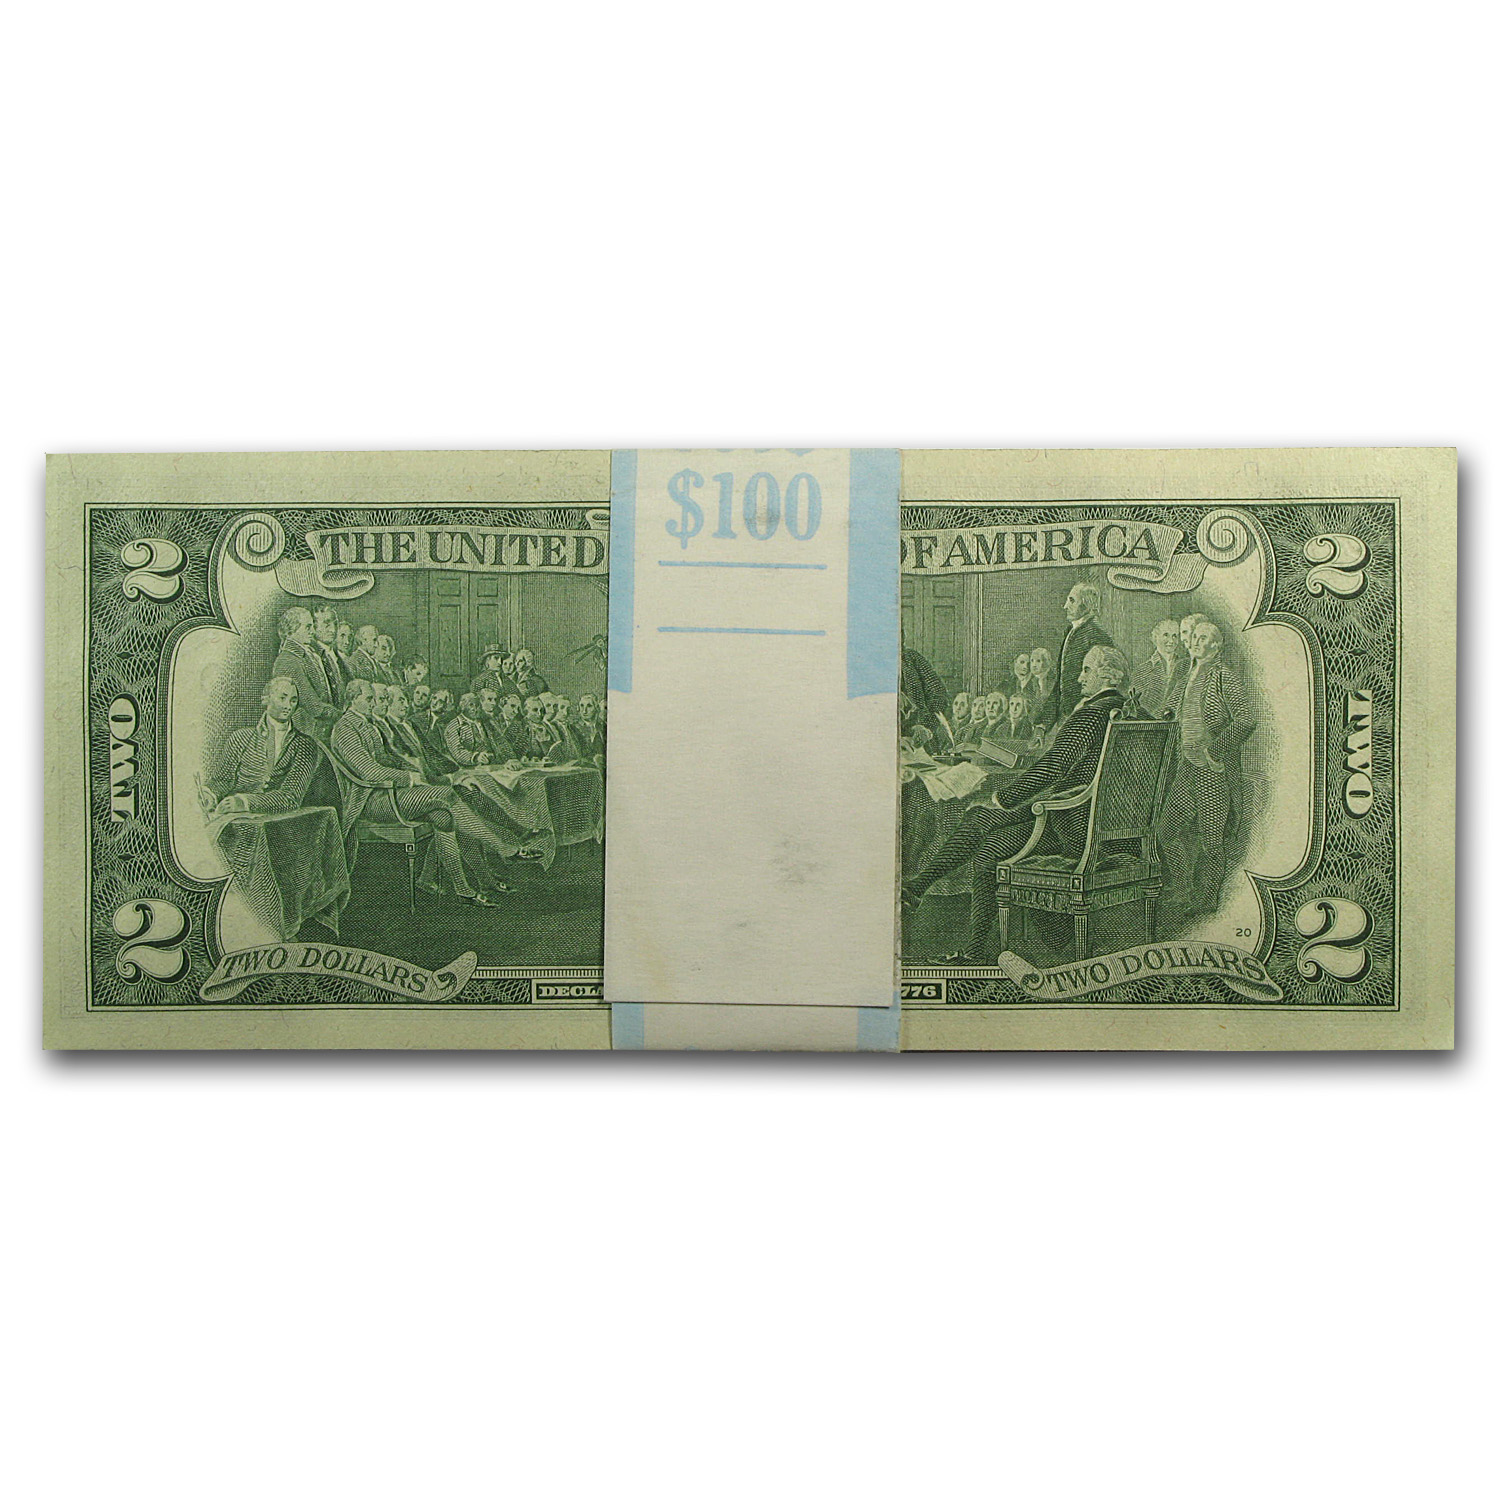 1976 (J-Kansas City) $2.00 FRN CU (50 Notes)